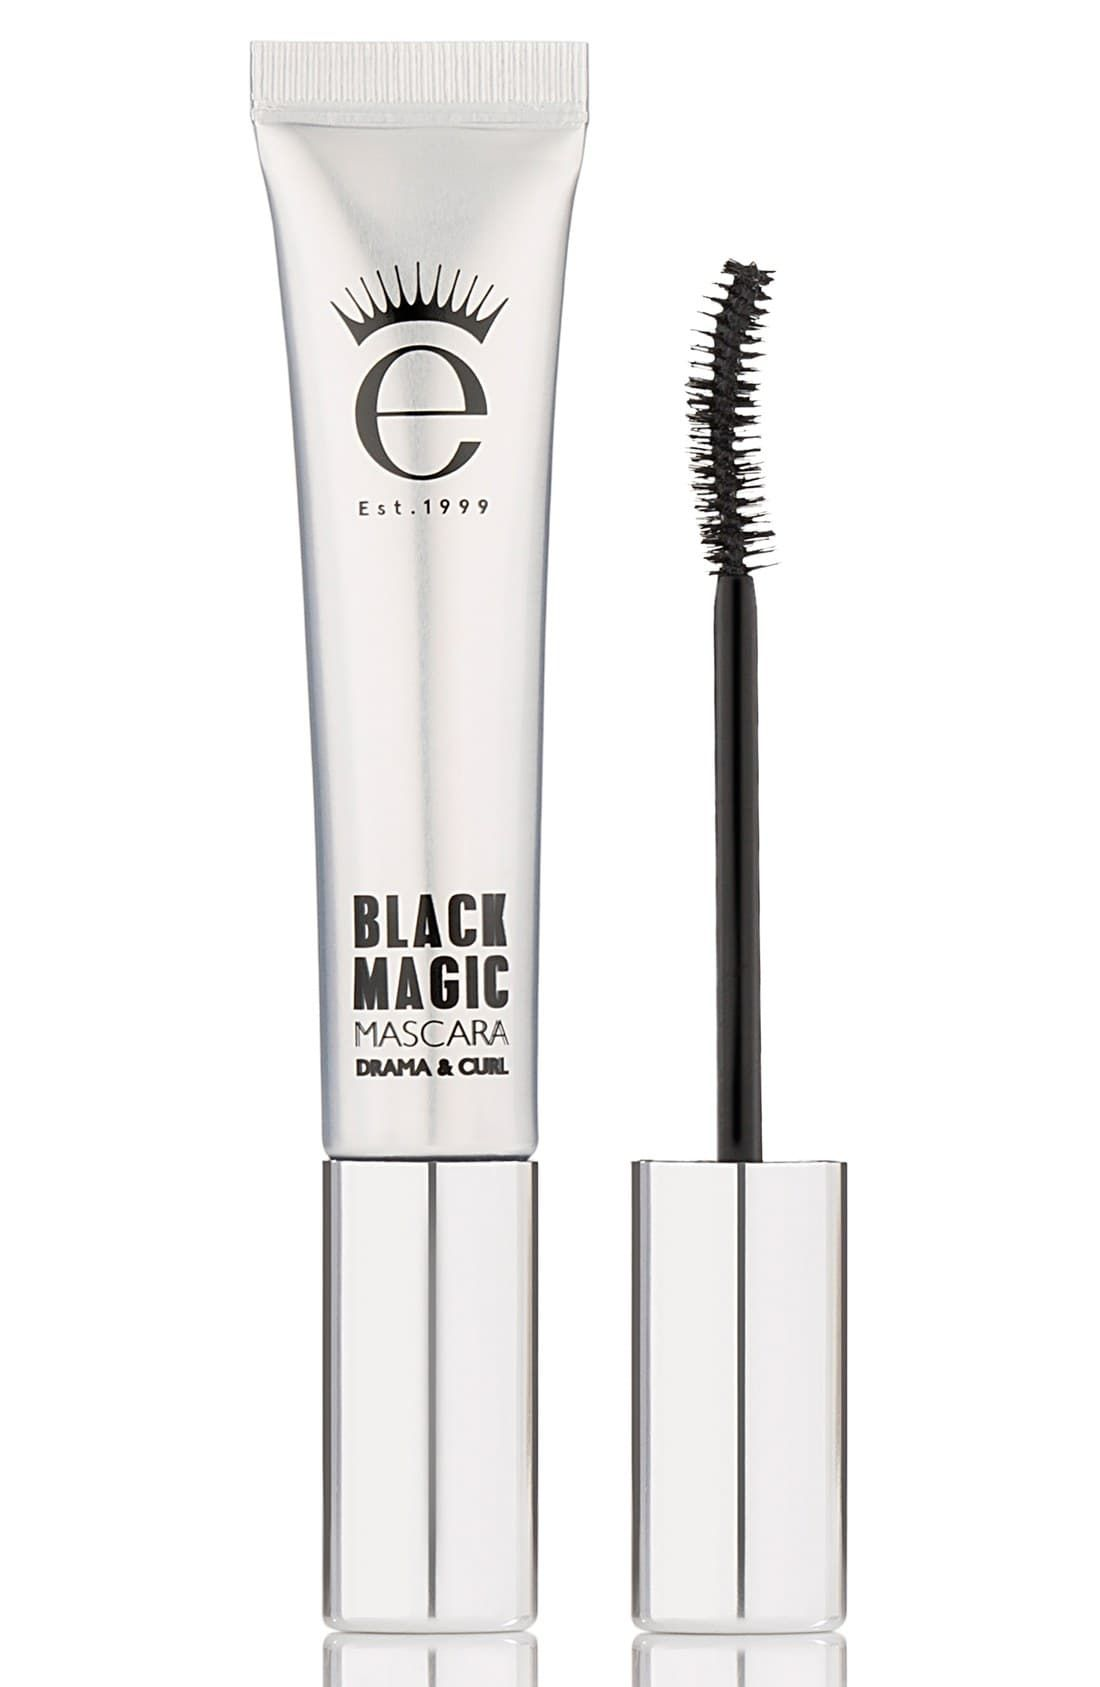 66c1e53d8aa Eyeko Black Magic Mascara, Size 0.14 oz - Black in 2019 | Products ...